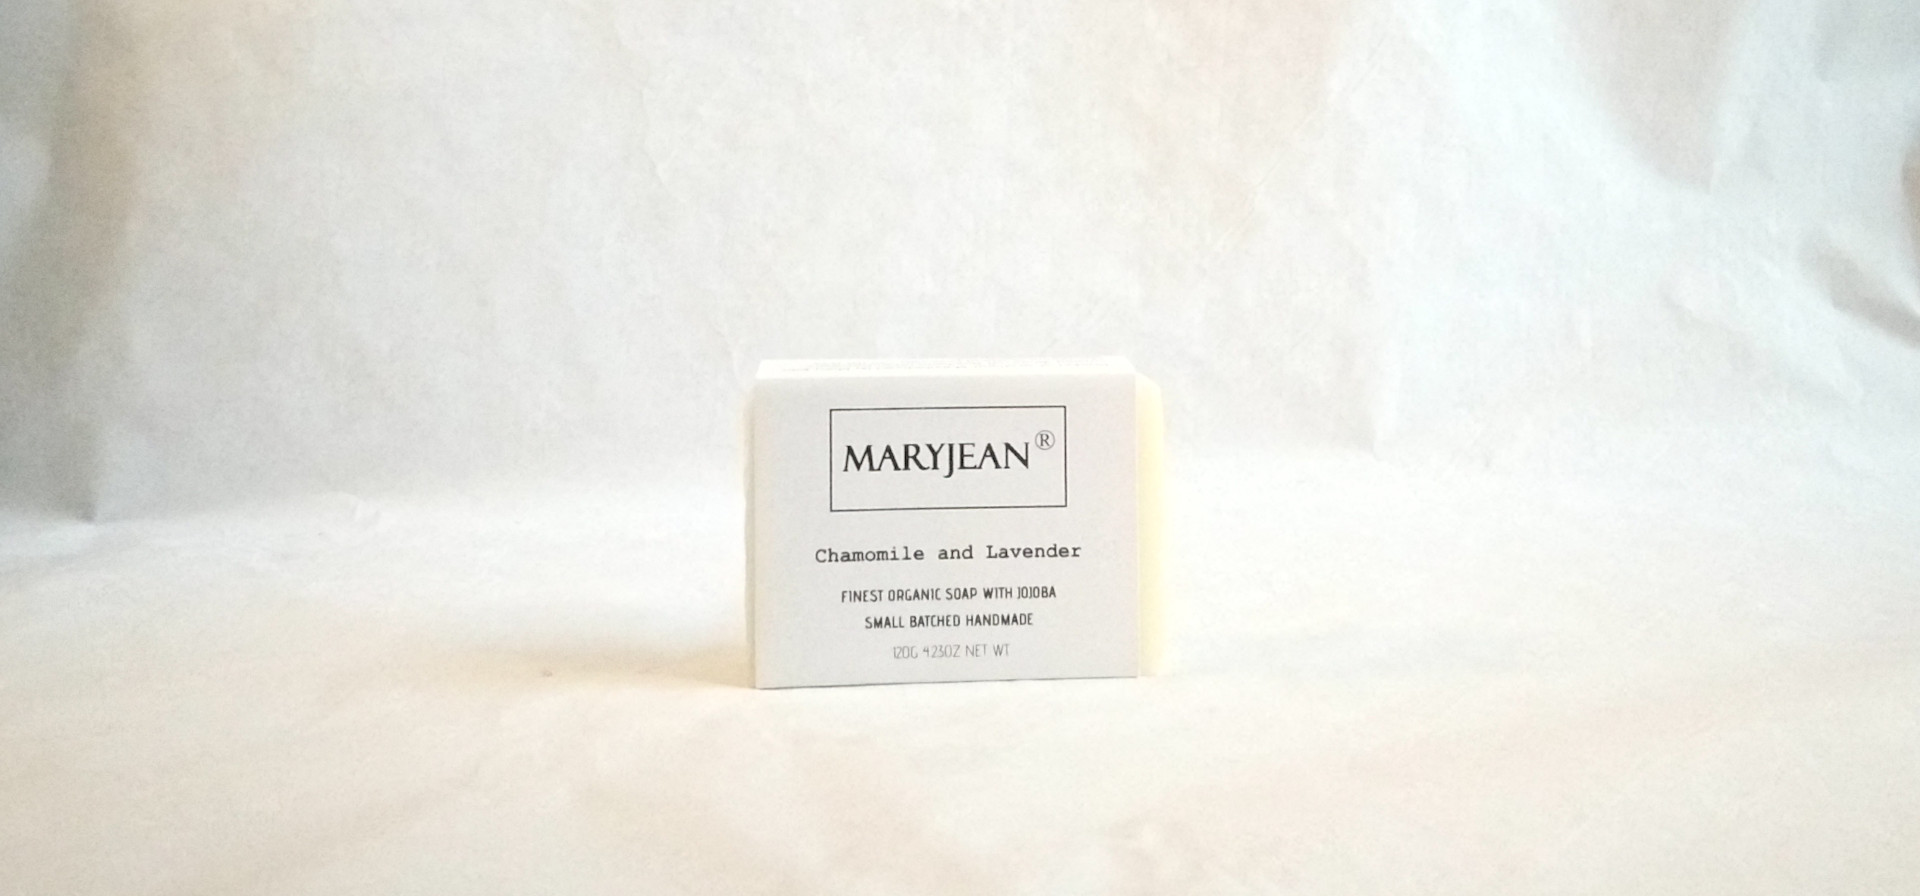 Twin Pack 2 Organic Scottish Chamomile Lavender Facial Cleansing Plastic And Sulphate Free Soaps Handmade With Jojoba en_GB